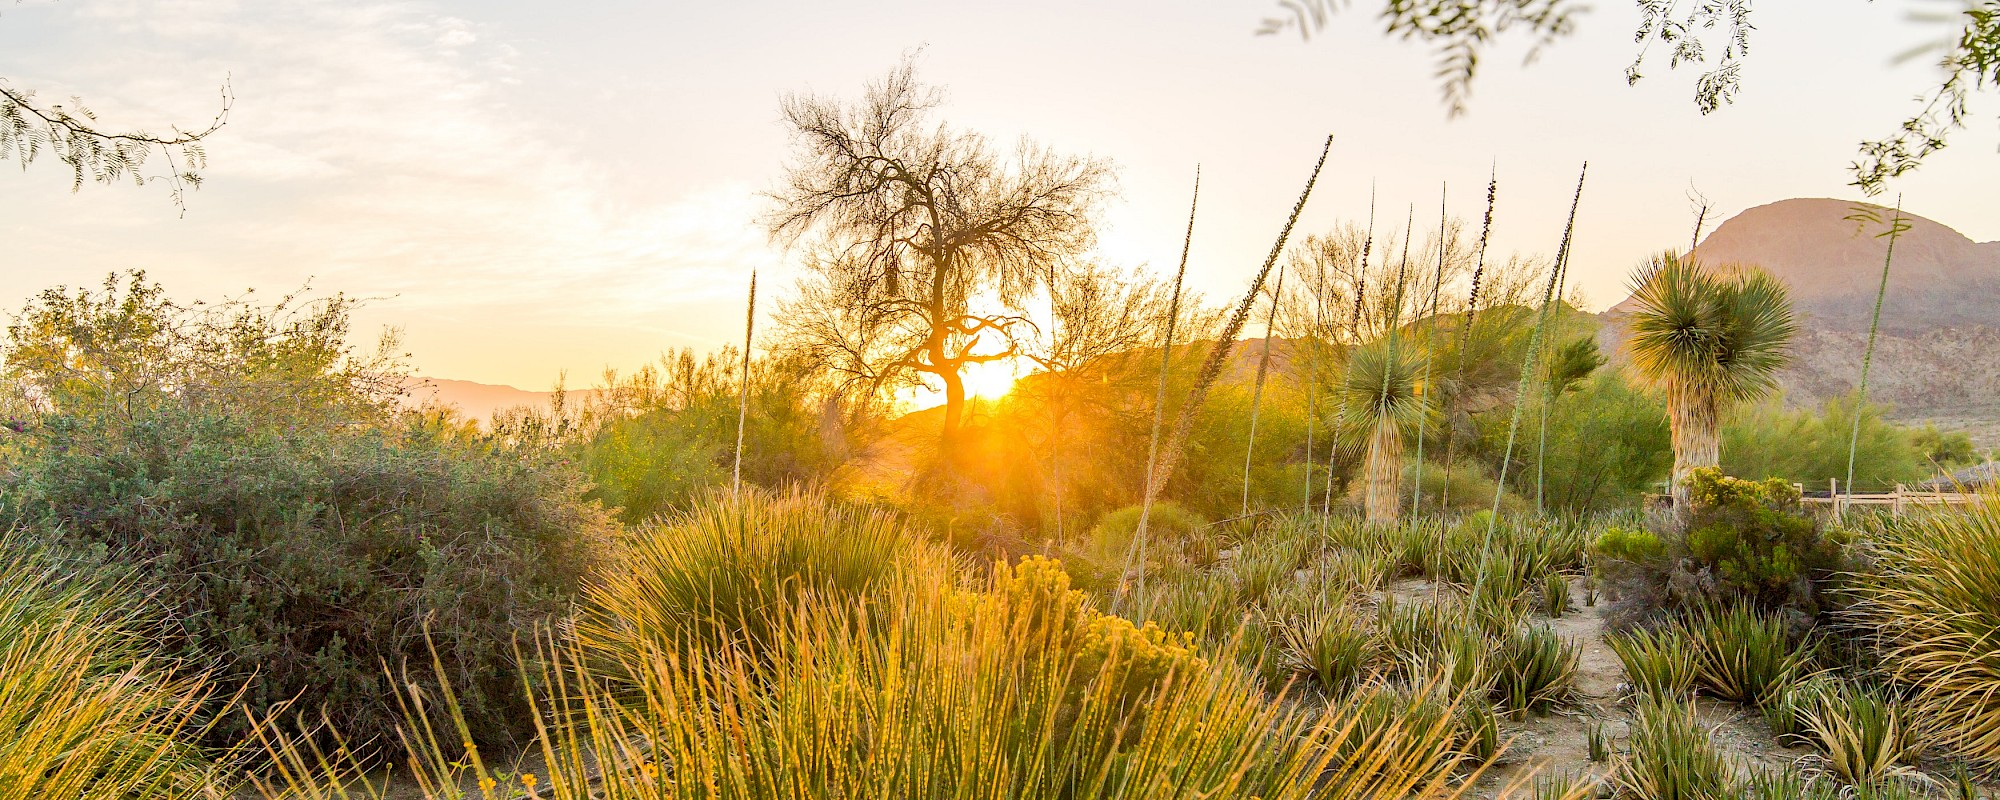 Enjoy beautiful sunsets over the horizon when you visit The Living Desert Zoo and Gardens.